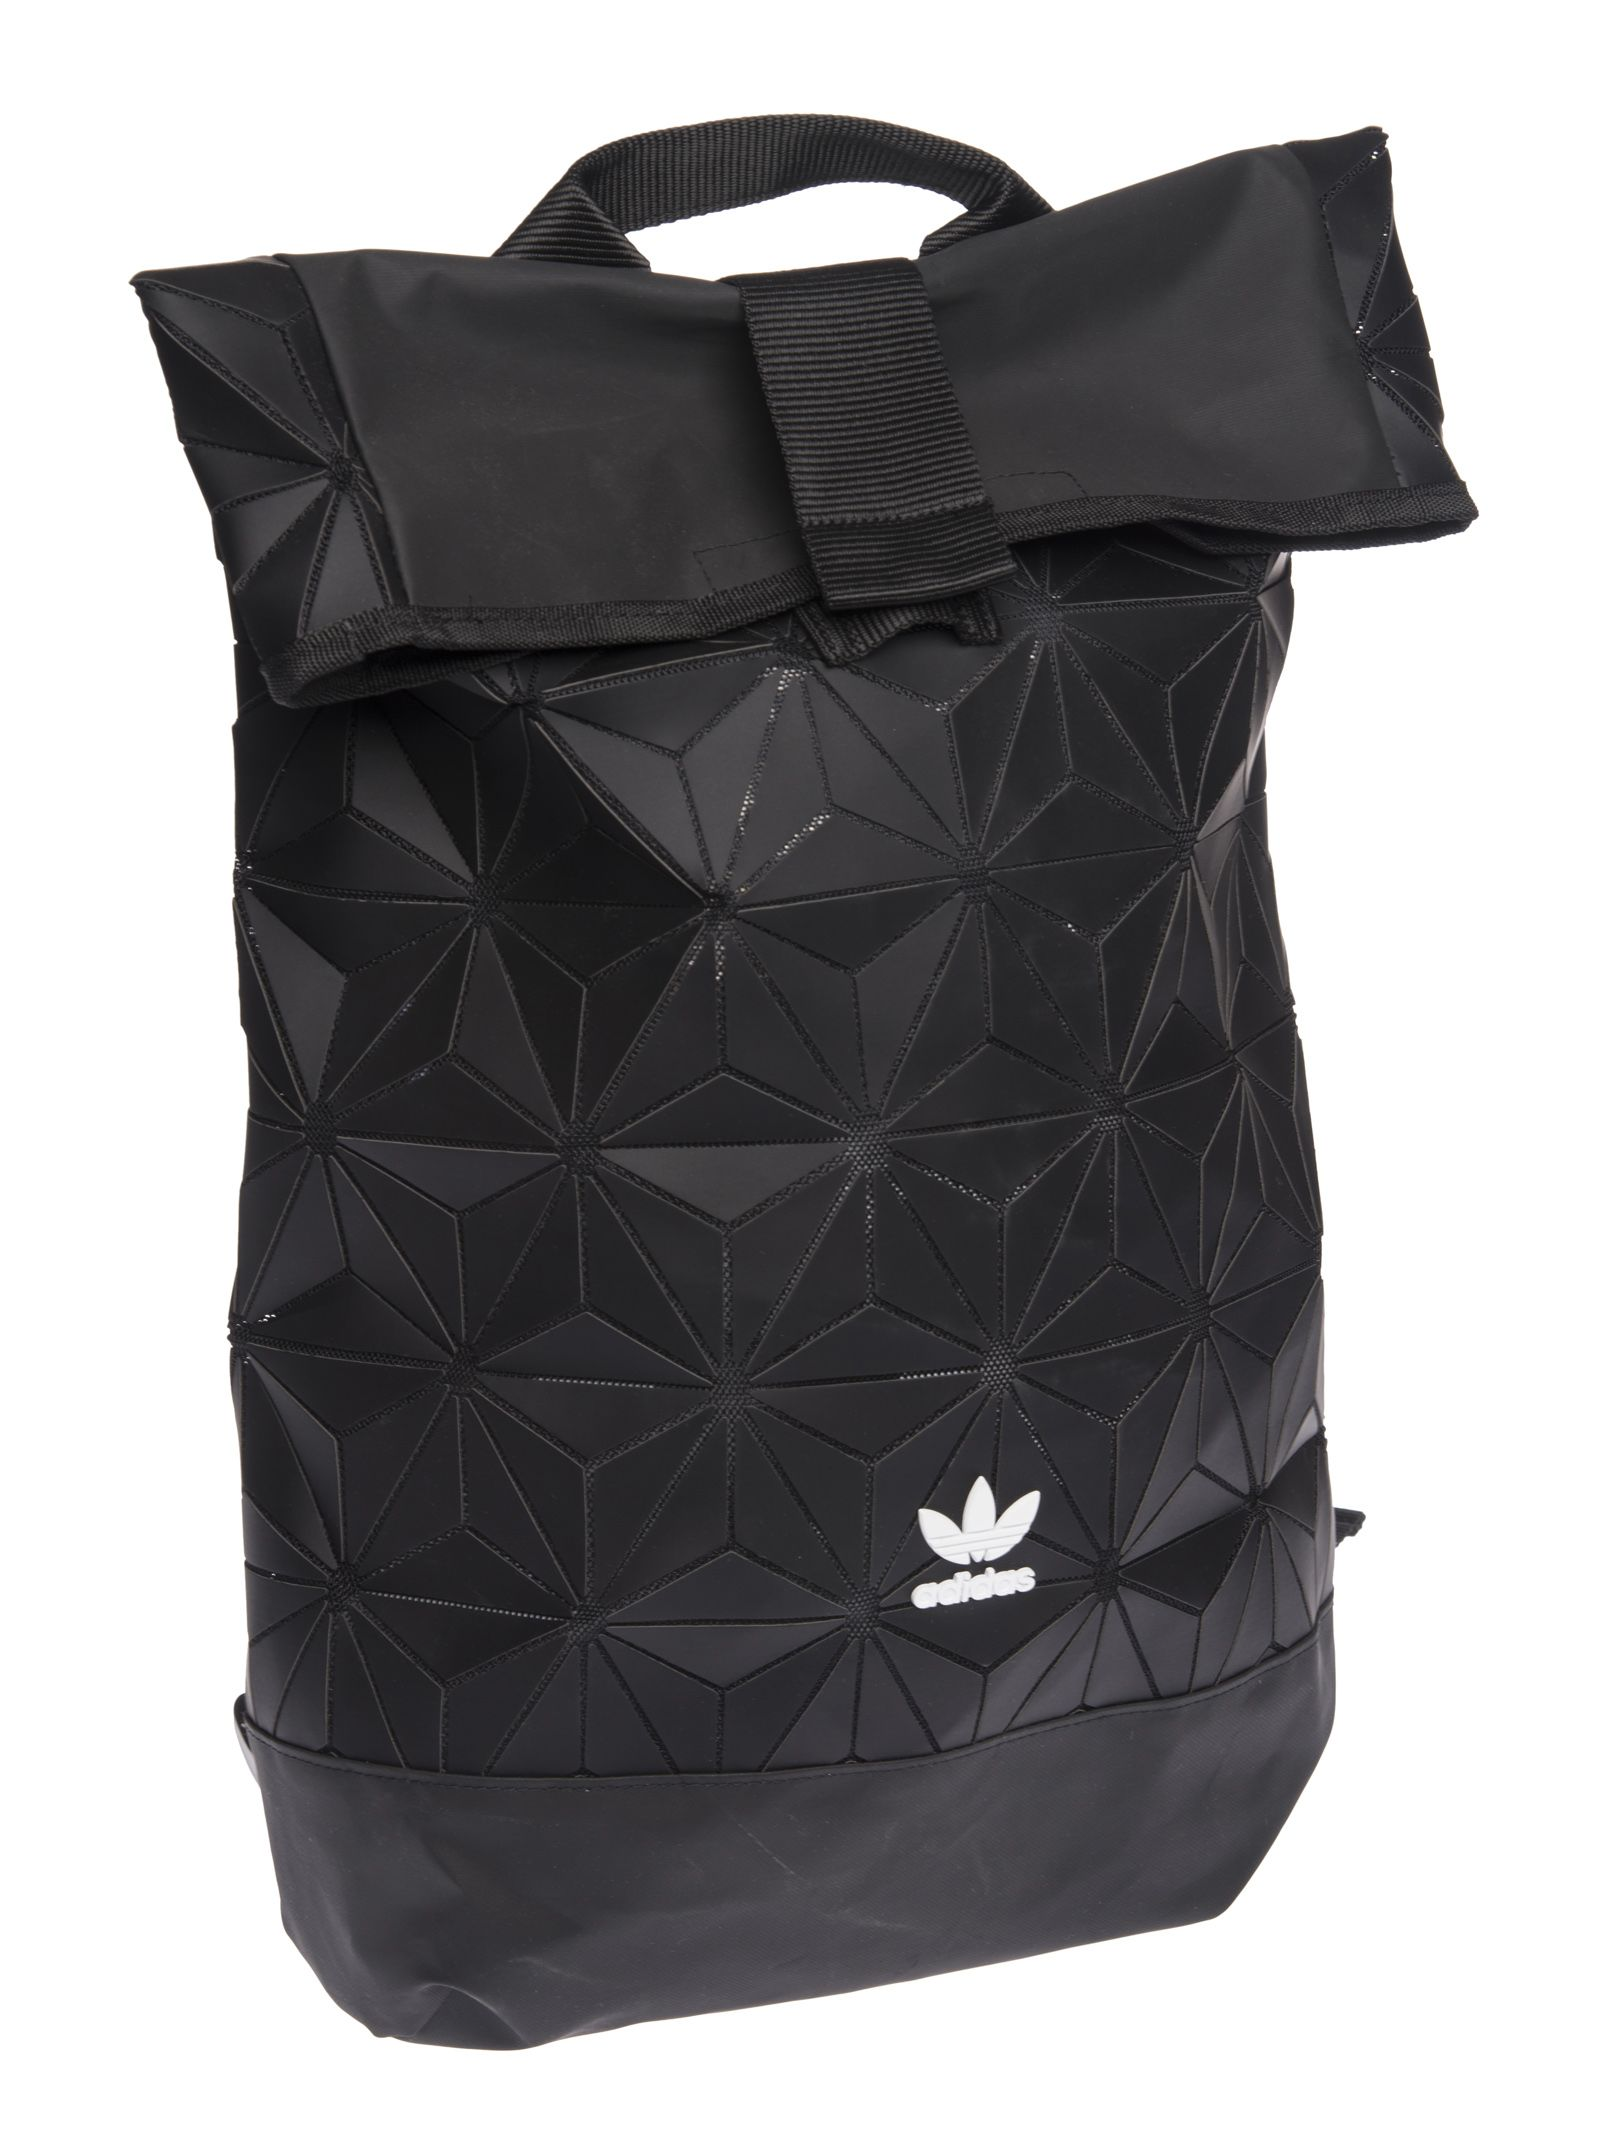 64048b9198f5 Adidas Originals Urban Backpack - Black Adidas Originals Urban Backpack -  Black ...